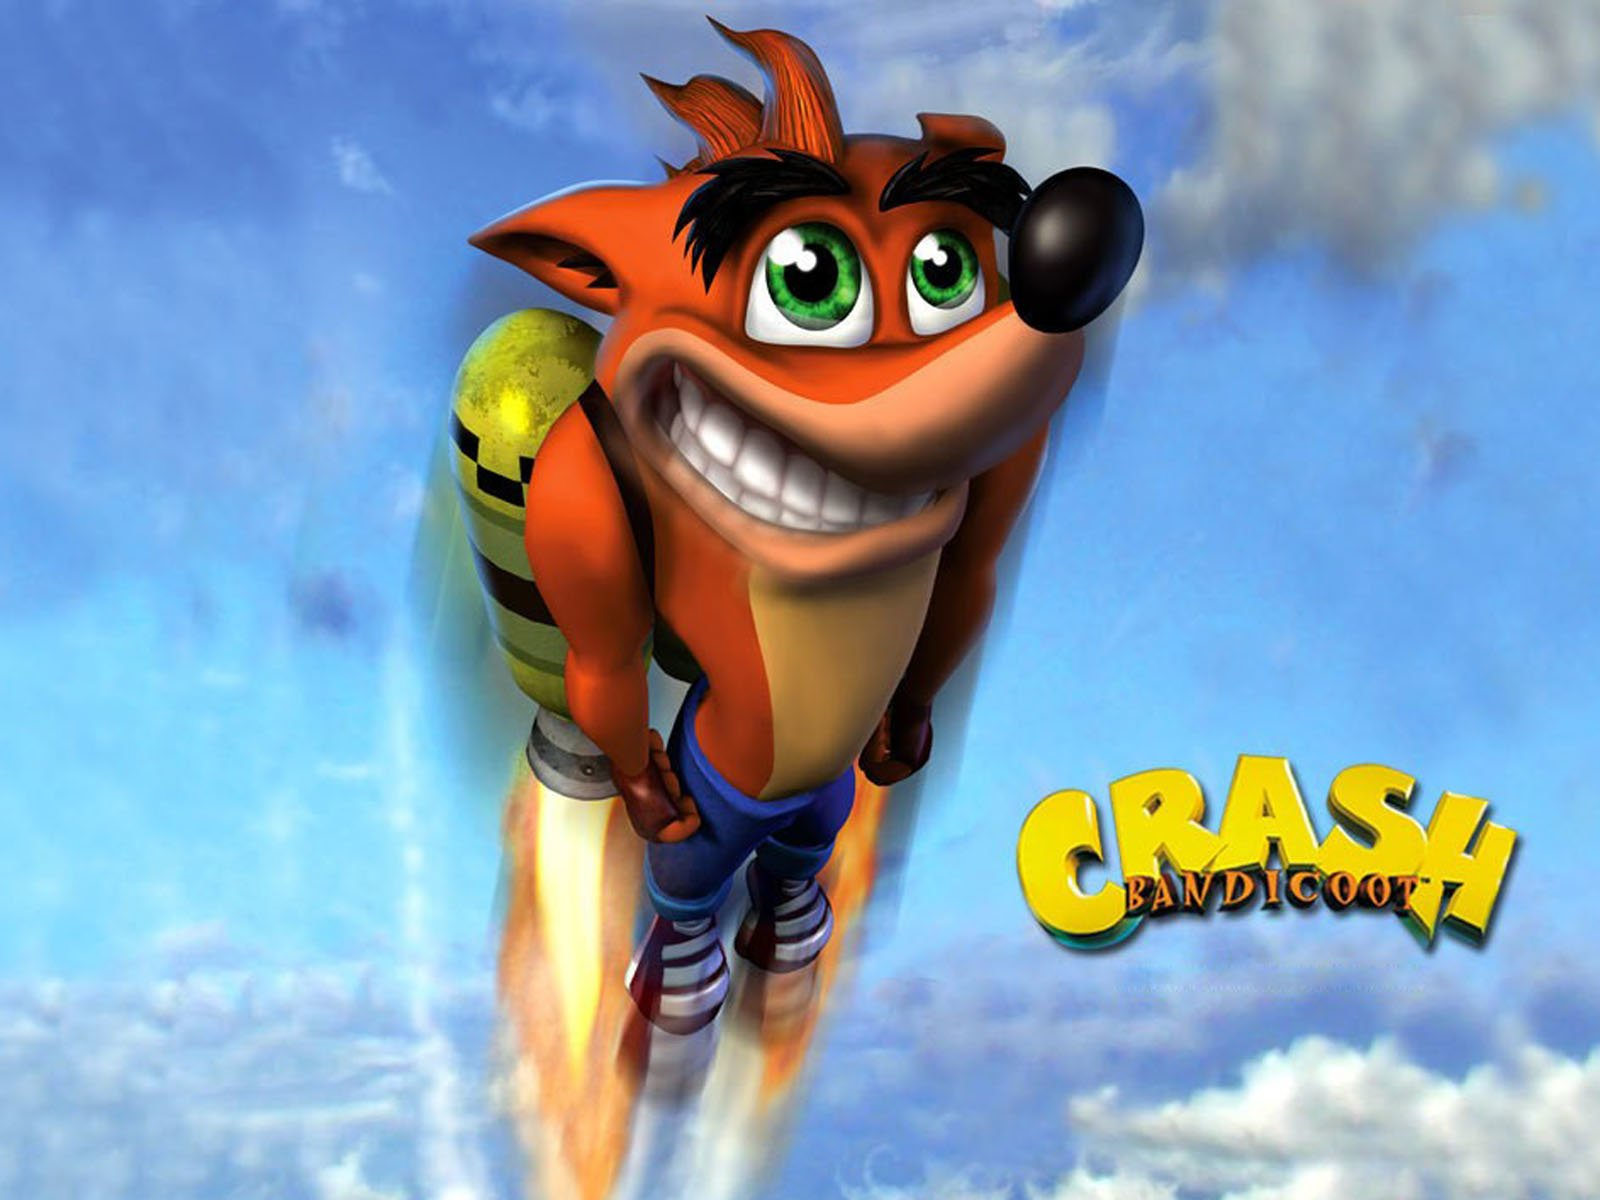 67 Crash Bandicoot HD Wallpapers